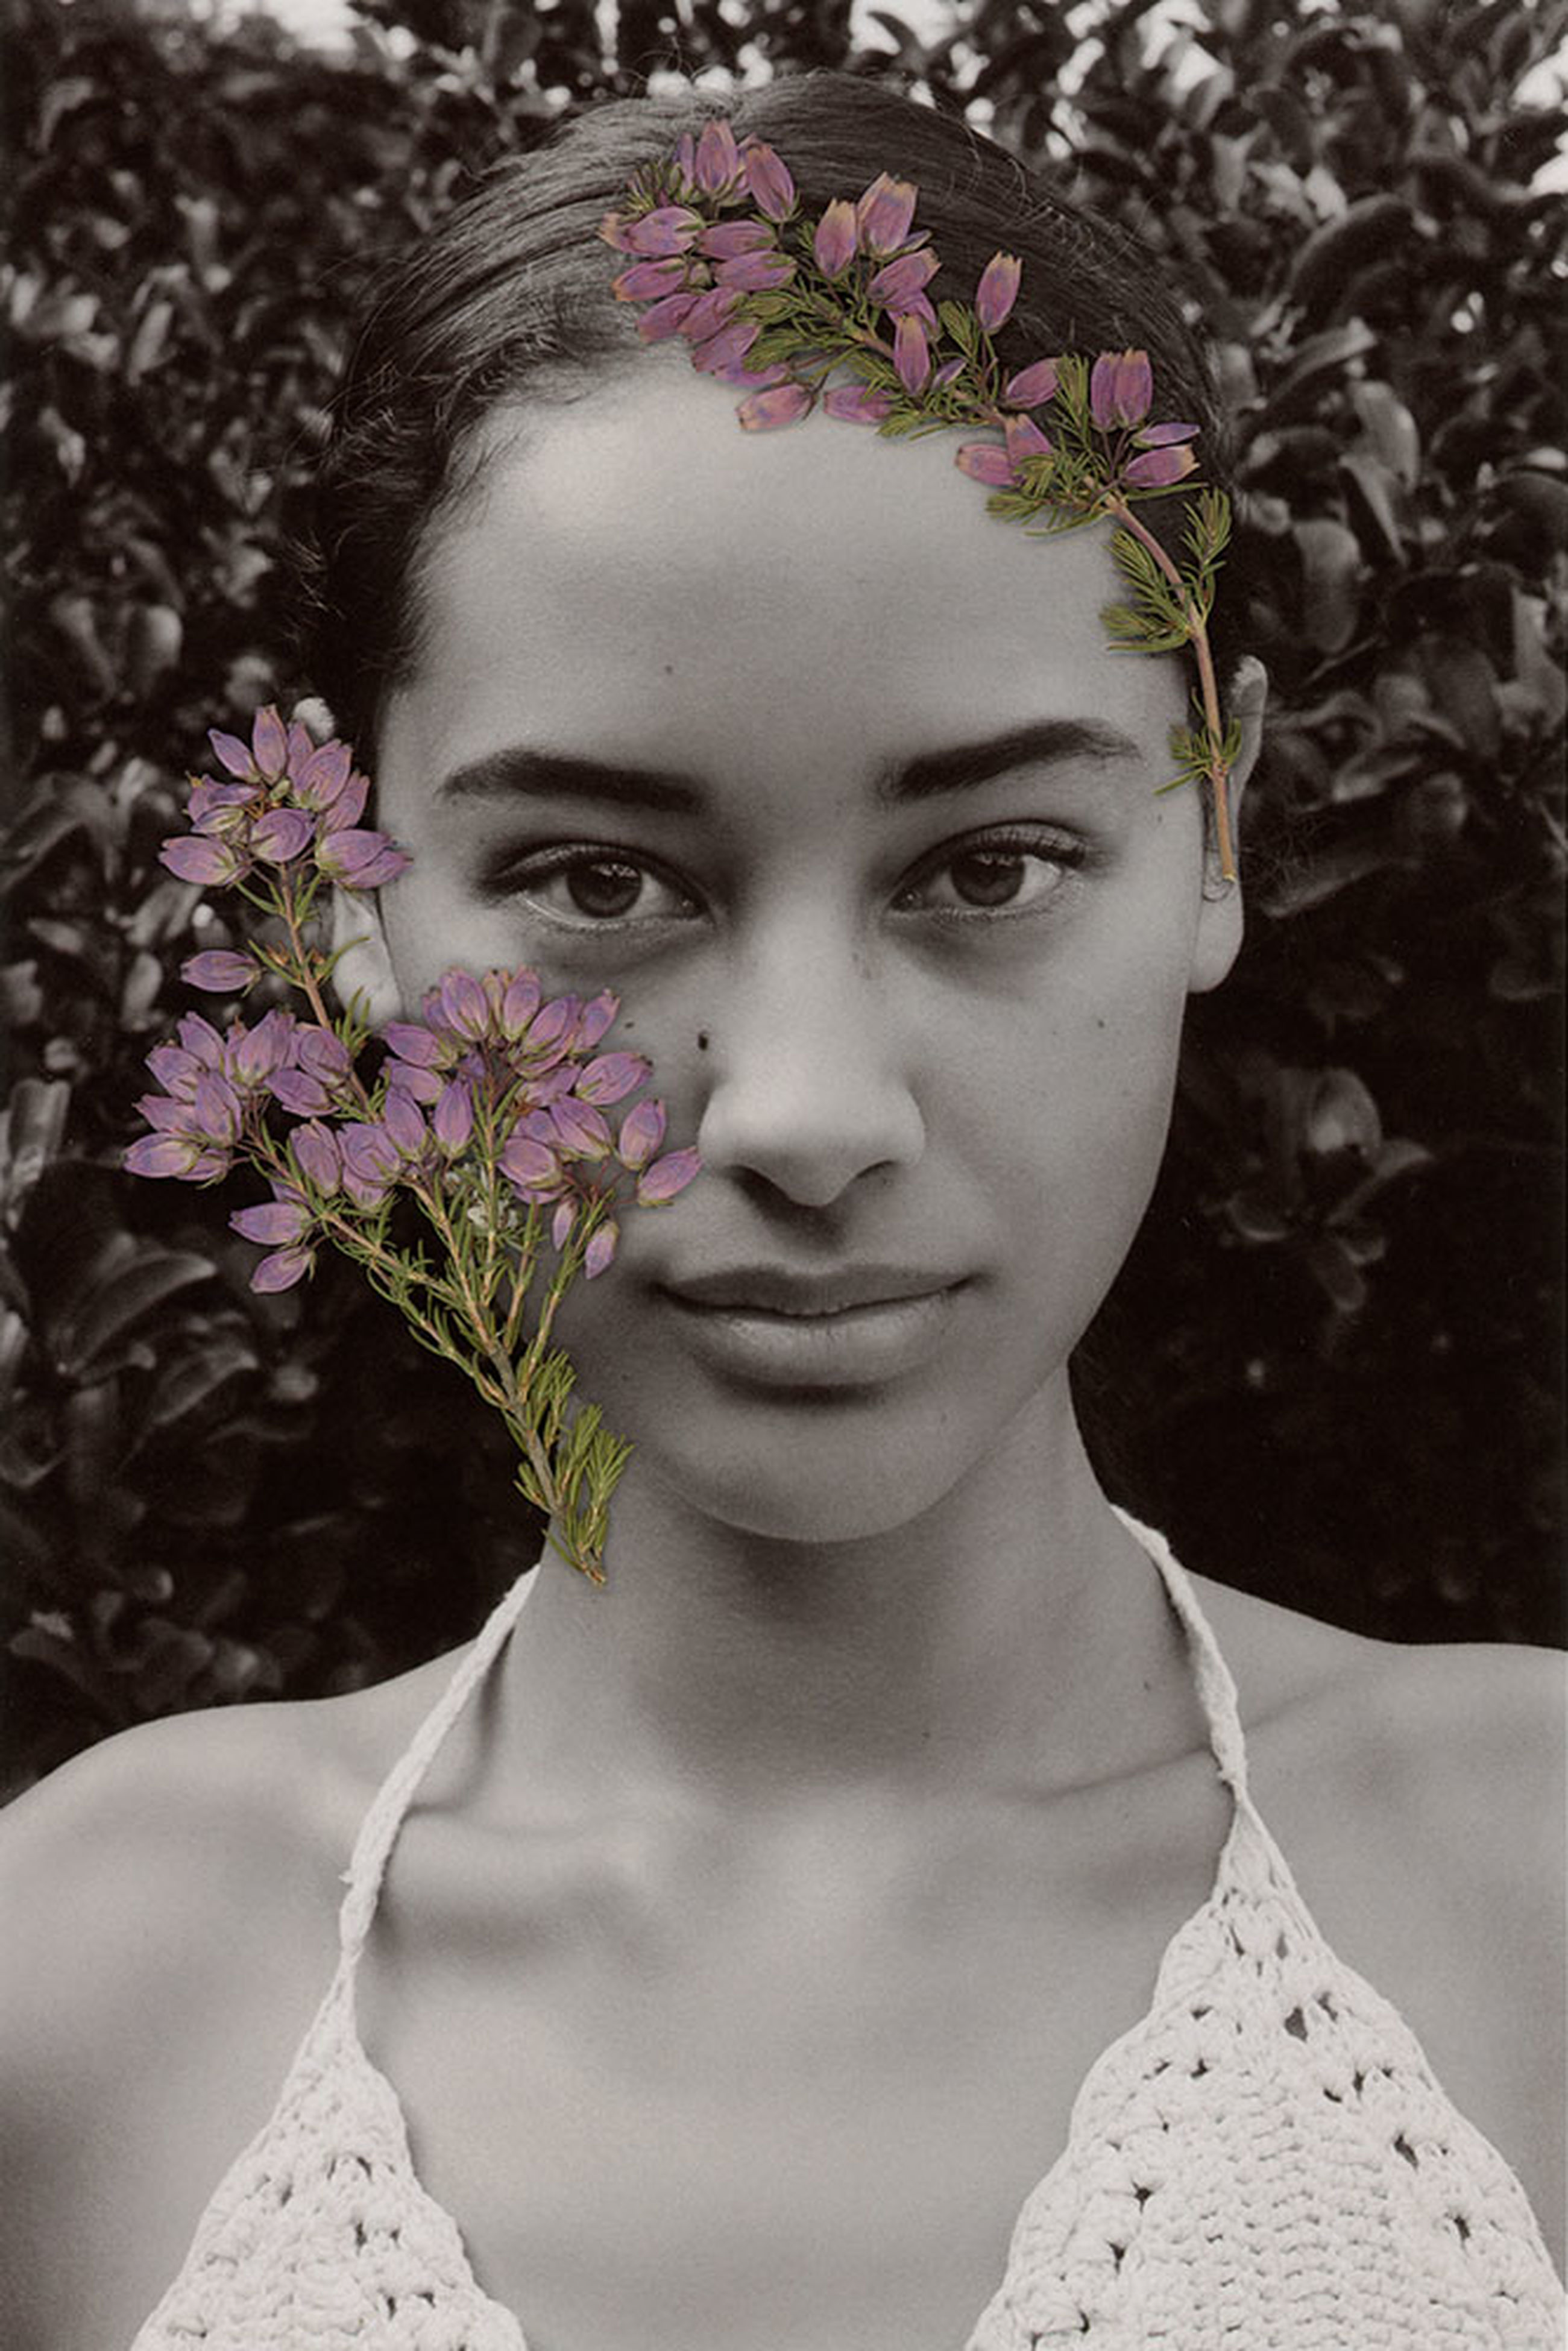 flower, headshot, close-up, portrait, lifestyles, fragility, focus on foreground, plant, growth, day, nature, outdoors, human face, petal, casual clothing, pink color, beauty in nature